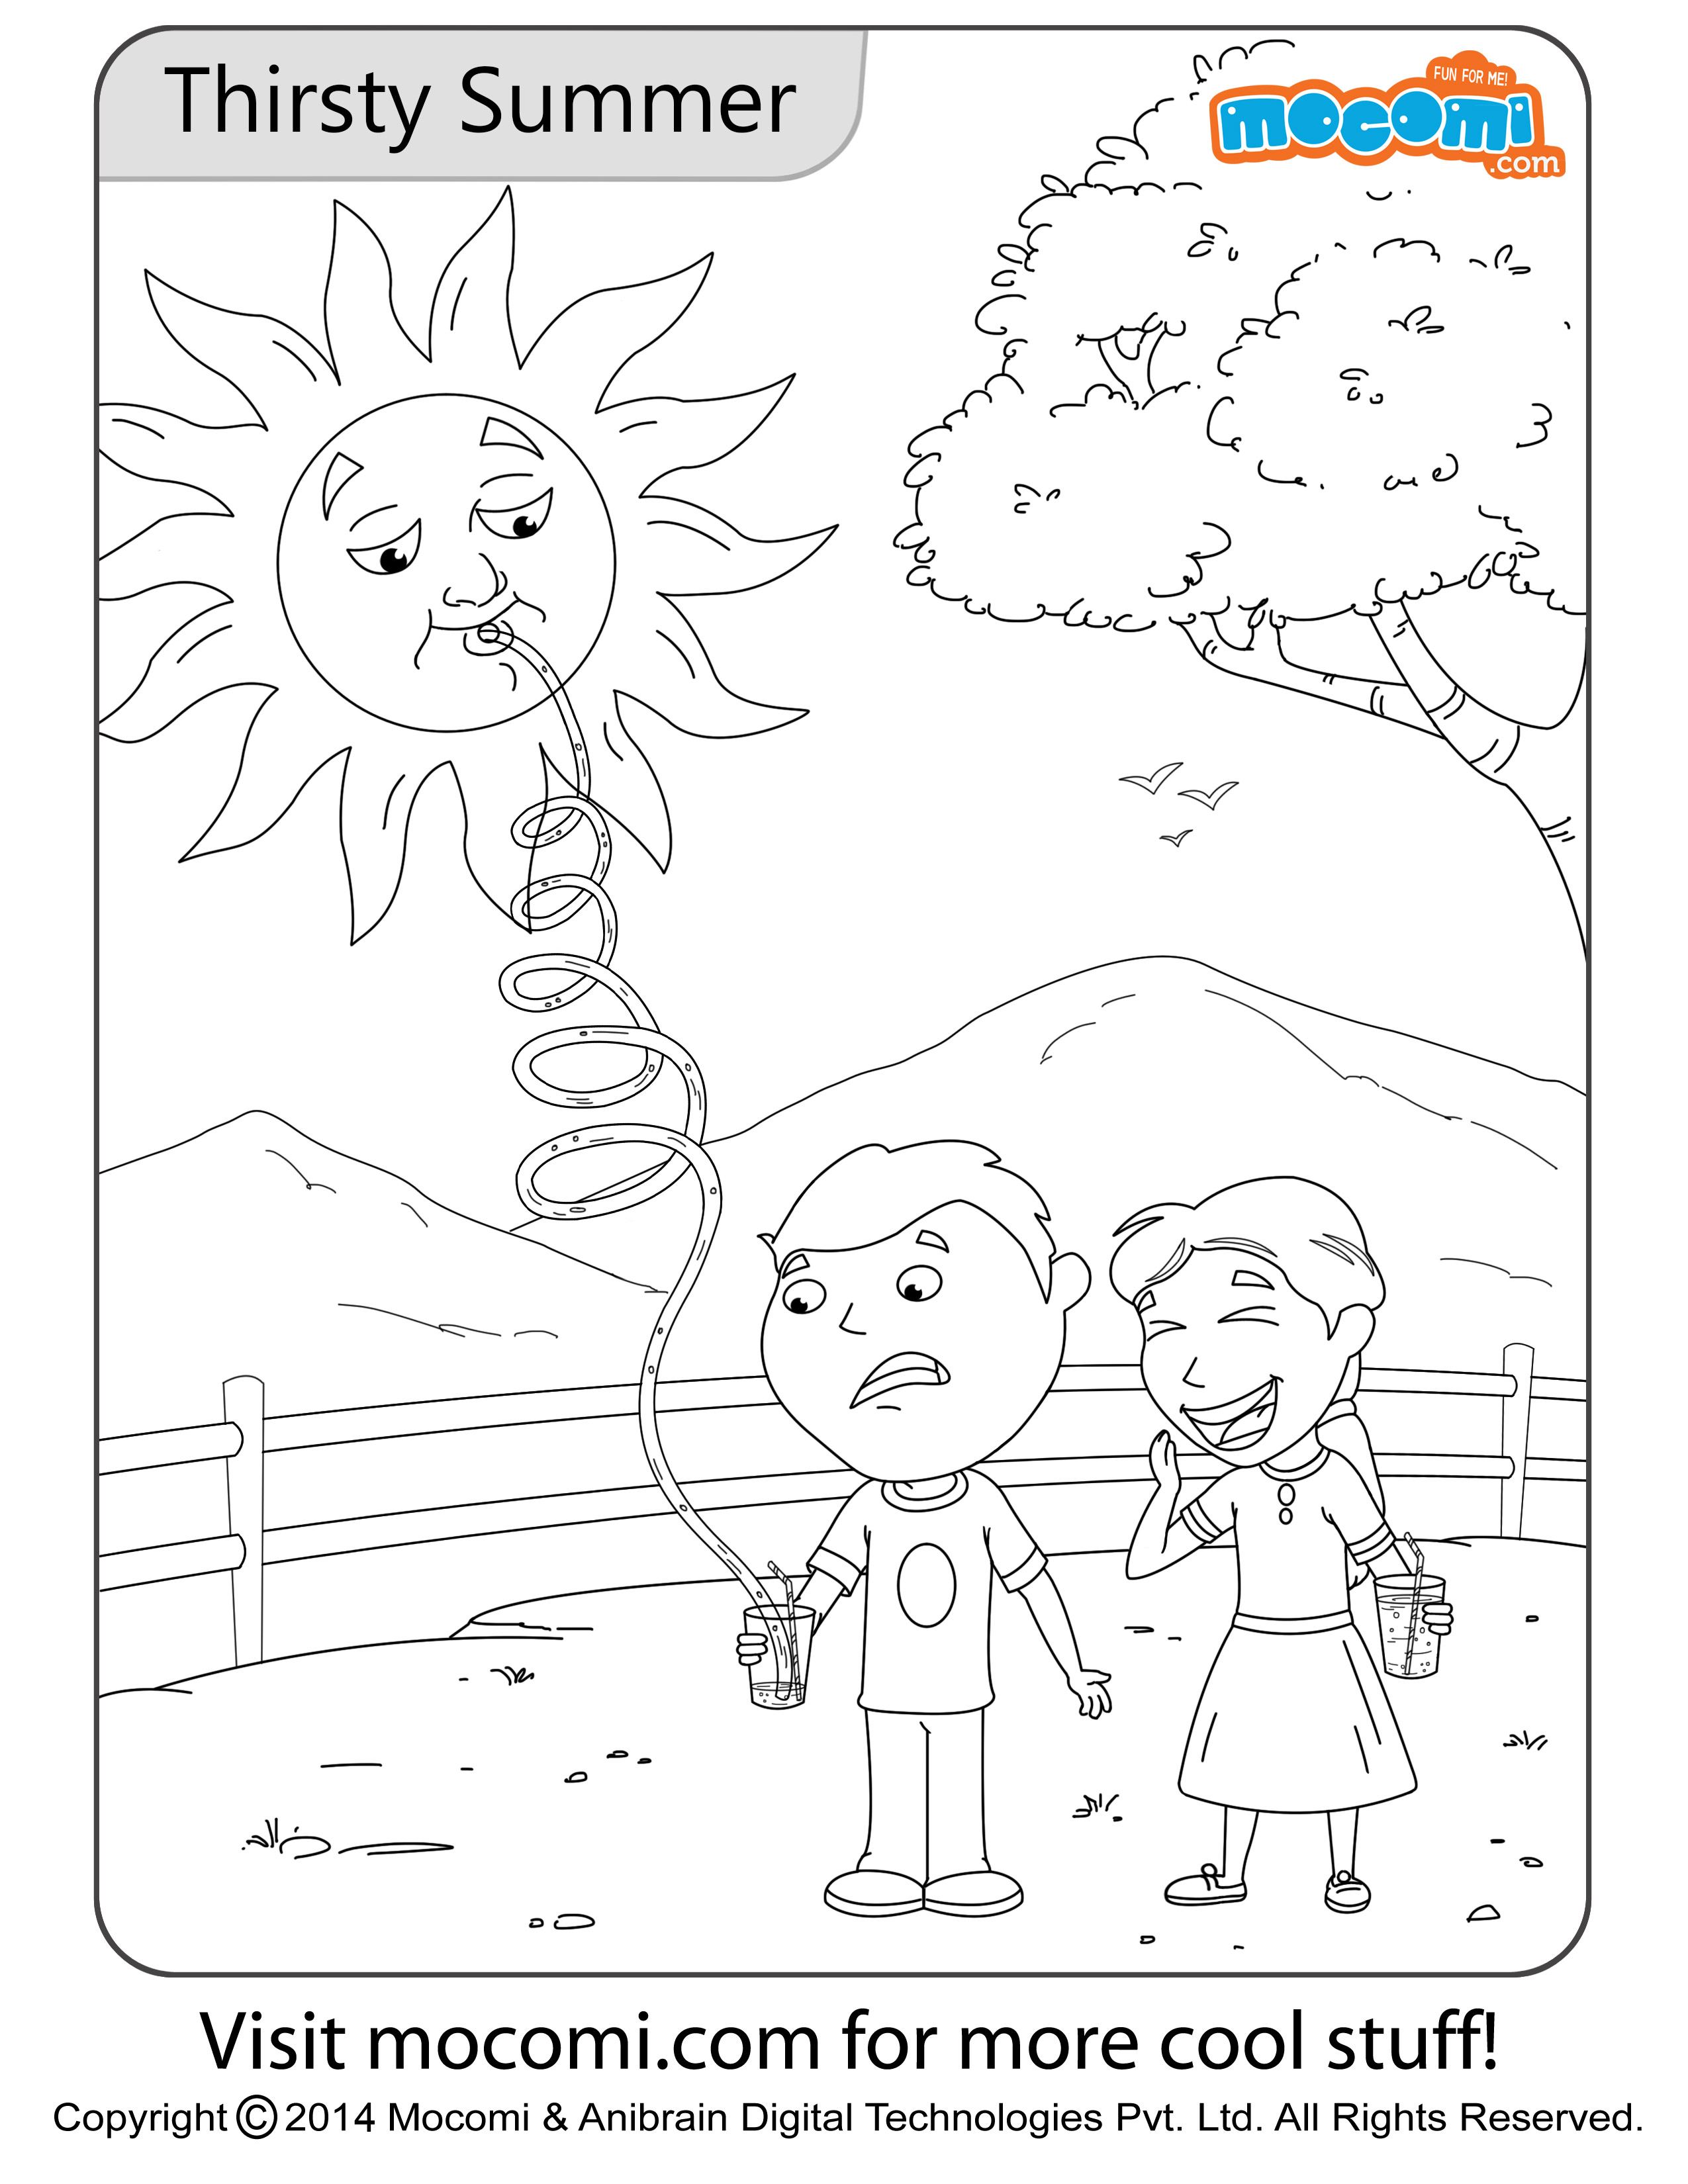 Thirsty Summer Colouring Page - Jojo Colouring Pages for ...